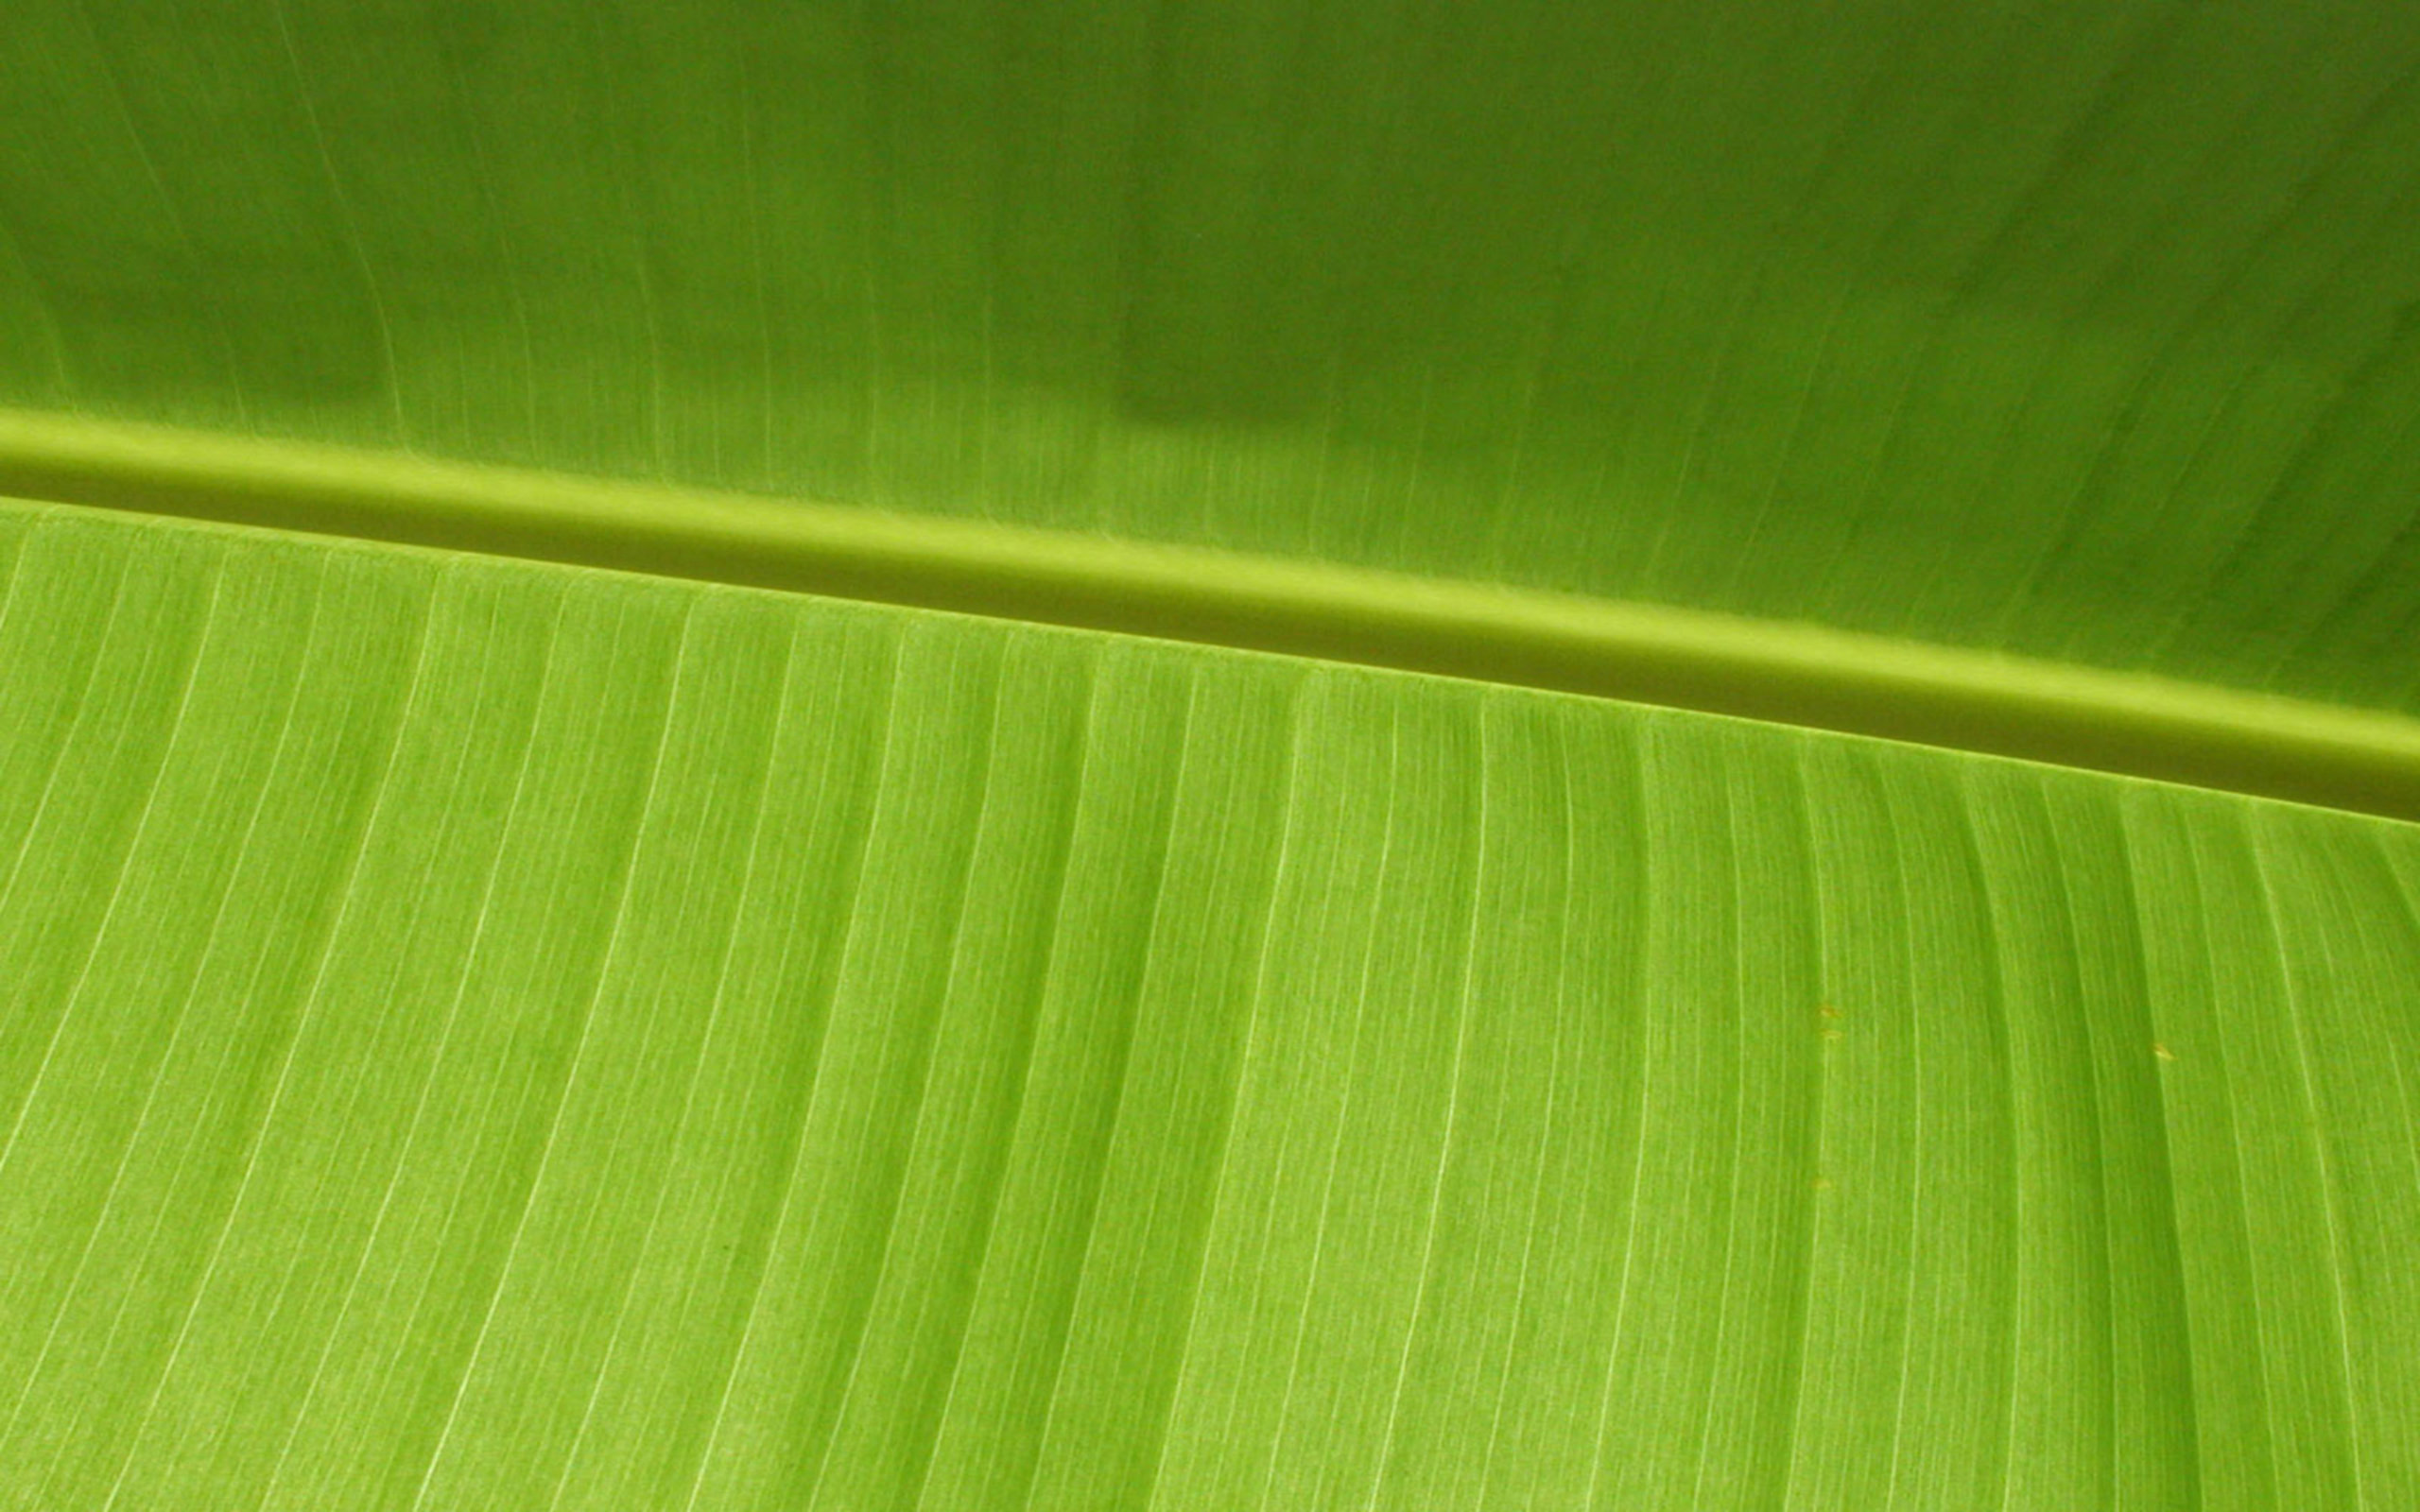 Banana Leaf Wallpaper Banana Leaf Wallpaper 2560x1600